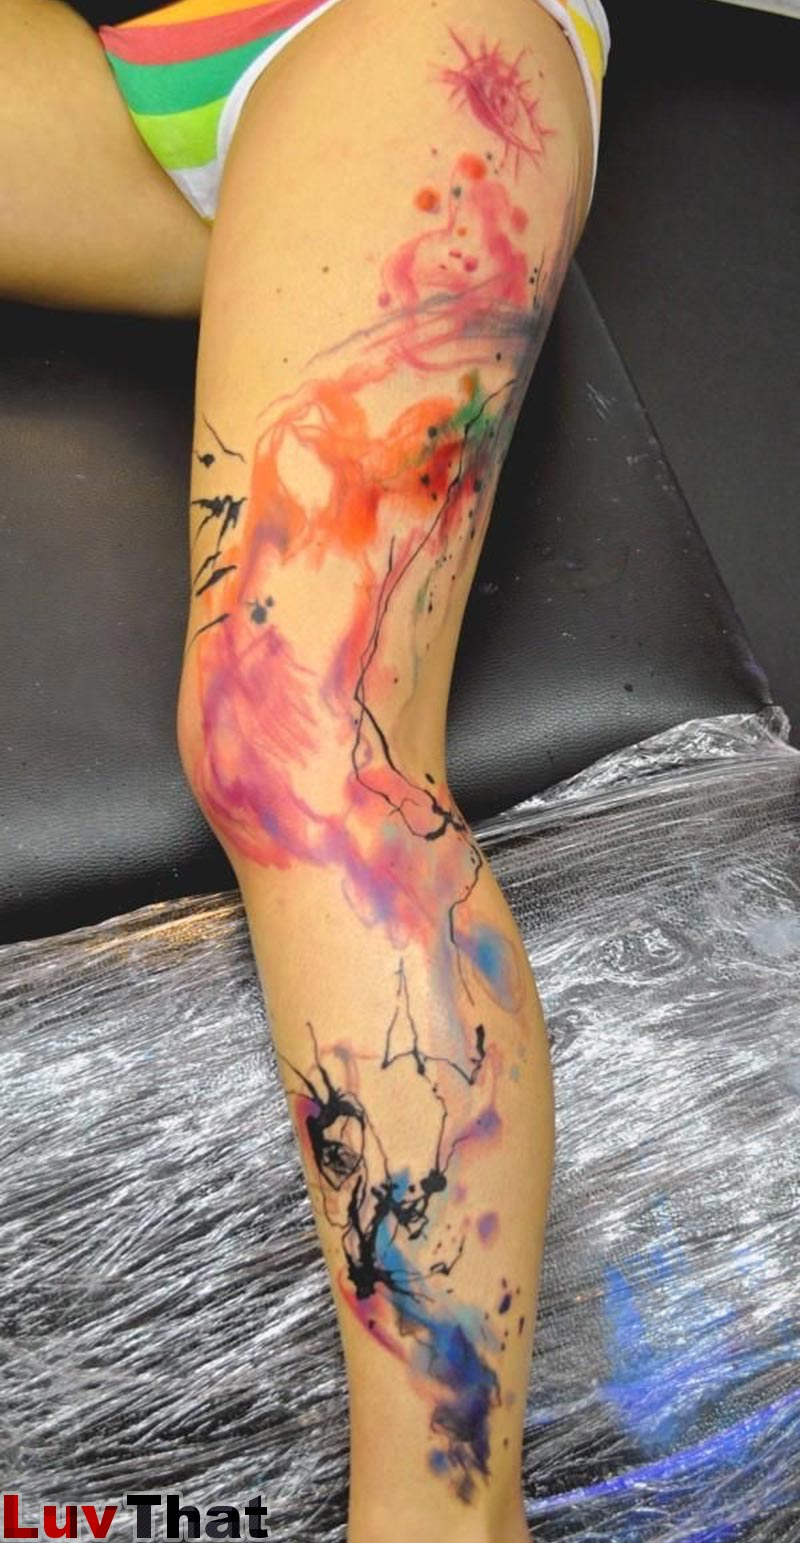 25 amazing watercolor tattoos luvthat for What is a watercolor tattoo